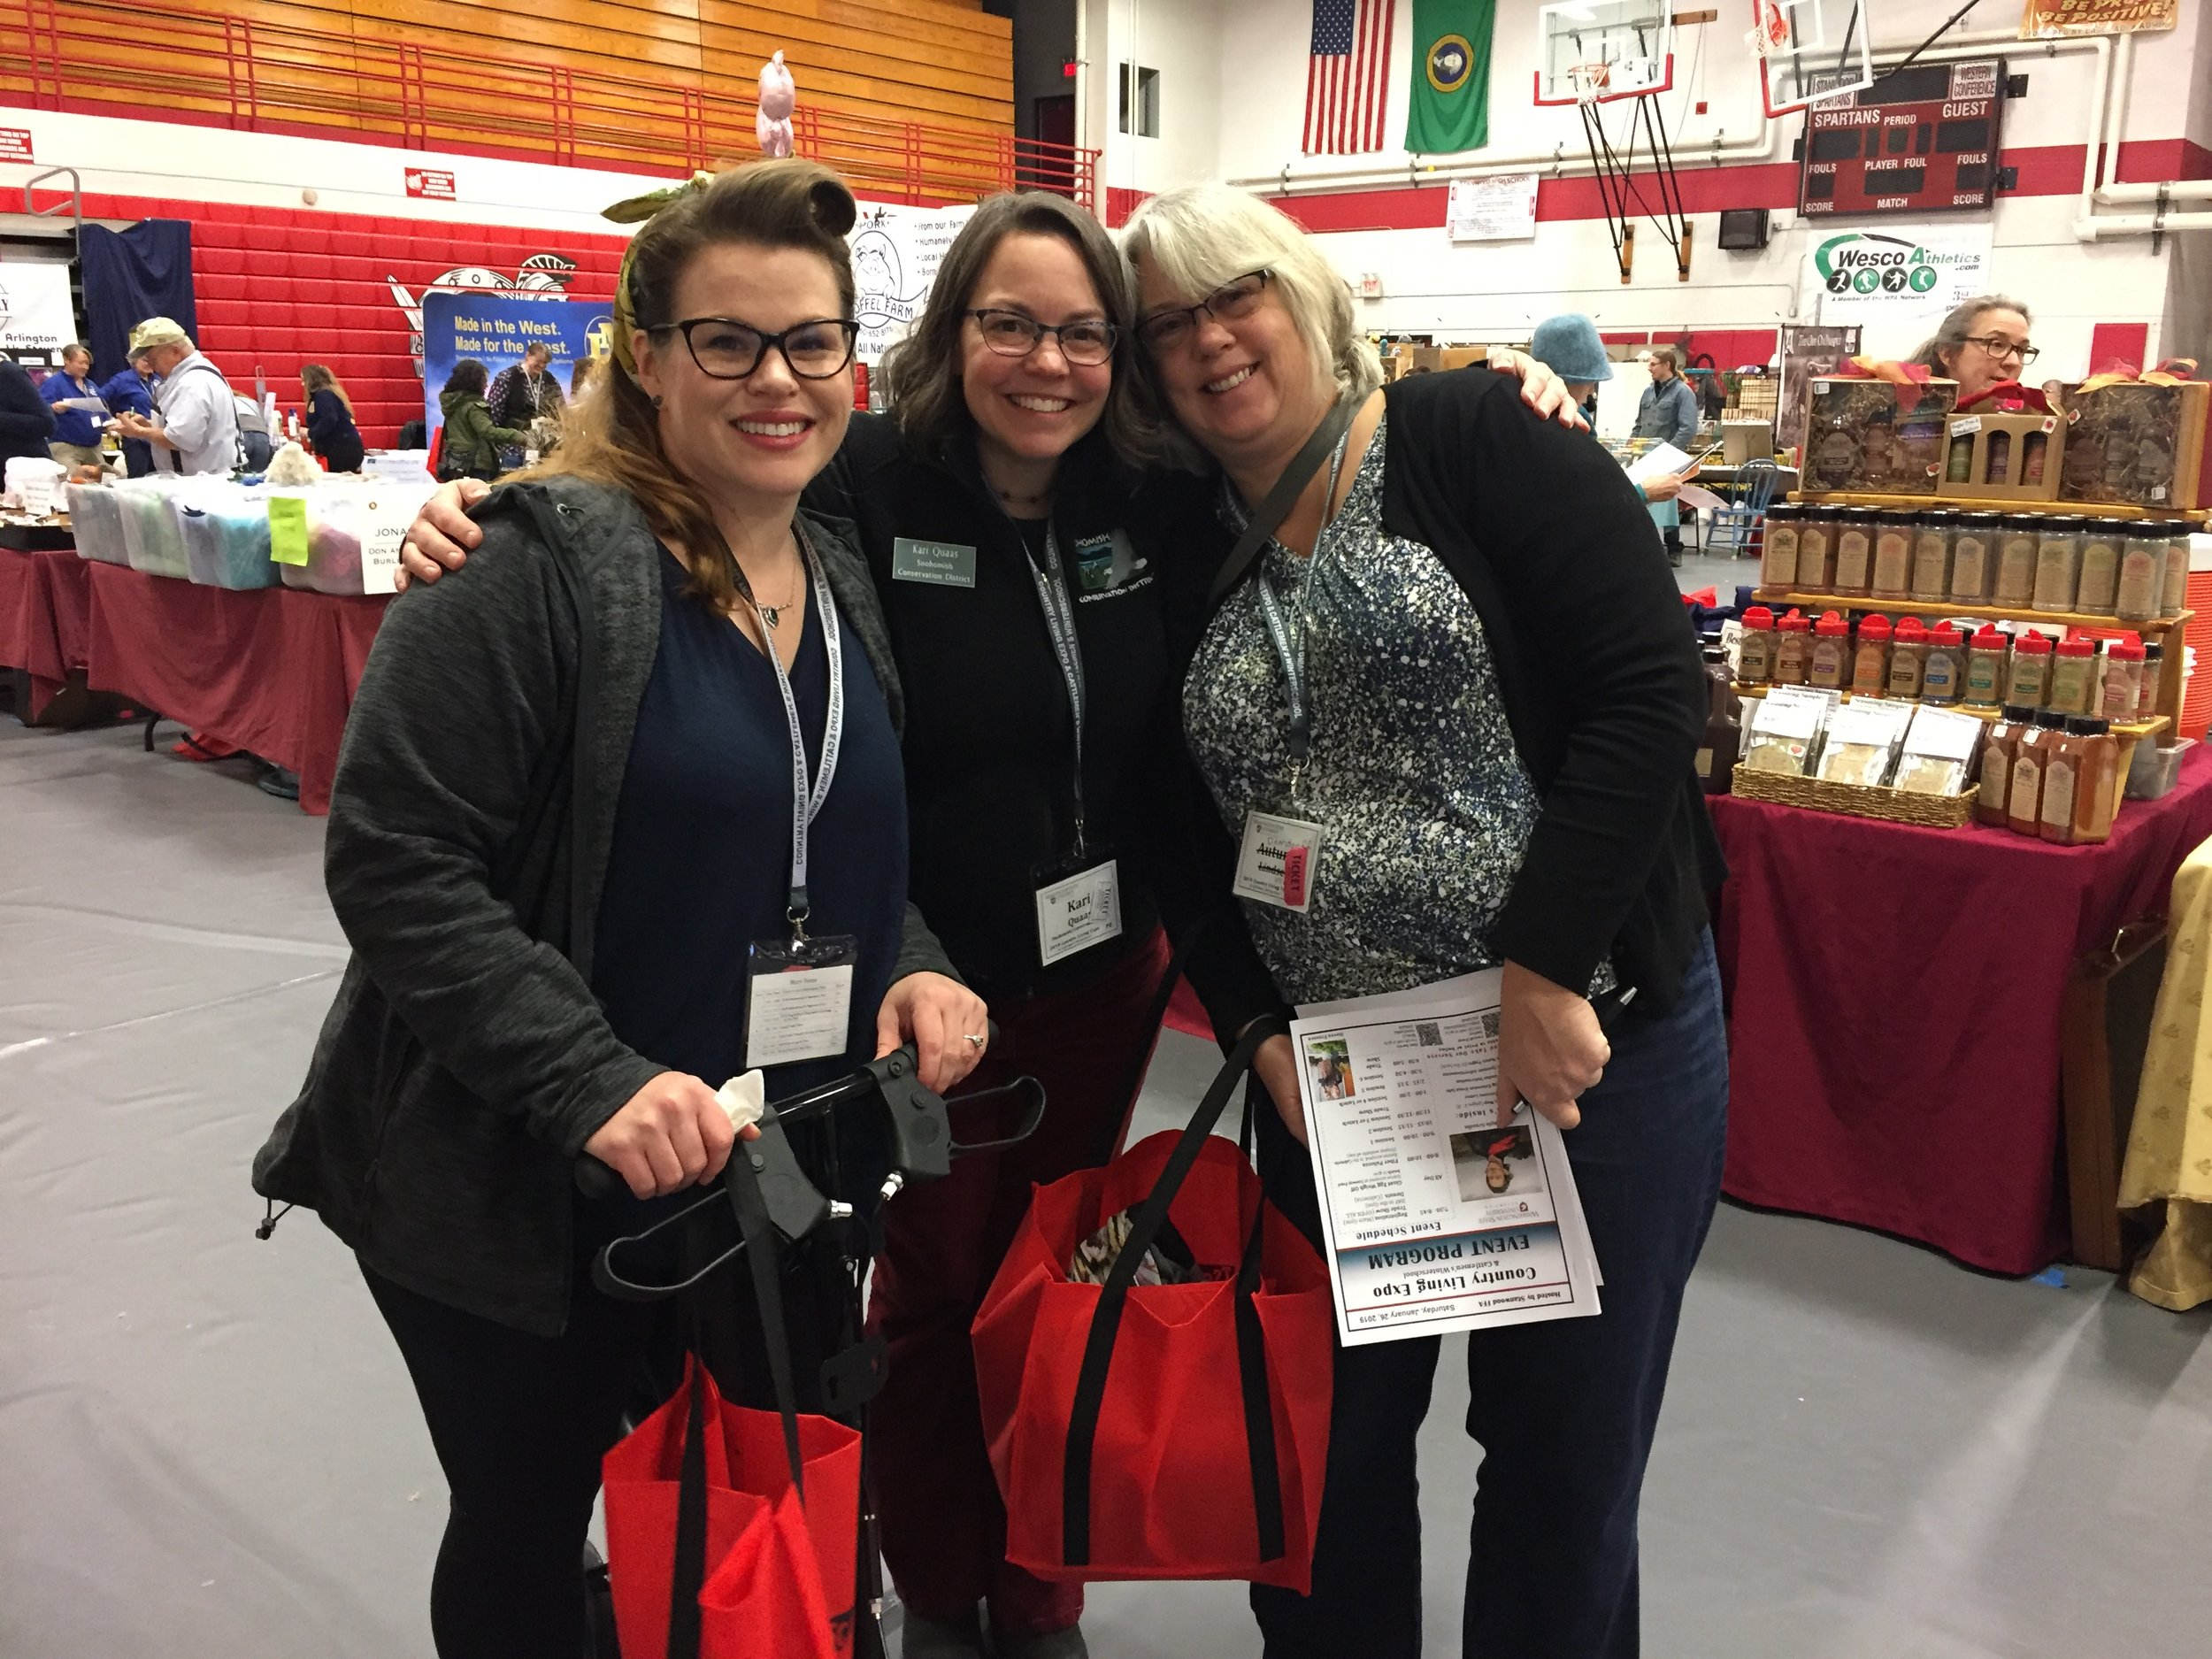 L to R: Mary Fosse, Kari Quaas, Molly Deardorff from Delta and Northwest Neighborhoods at the Country Living Expo in January 2019.